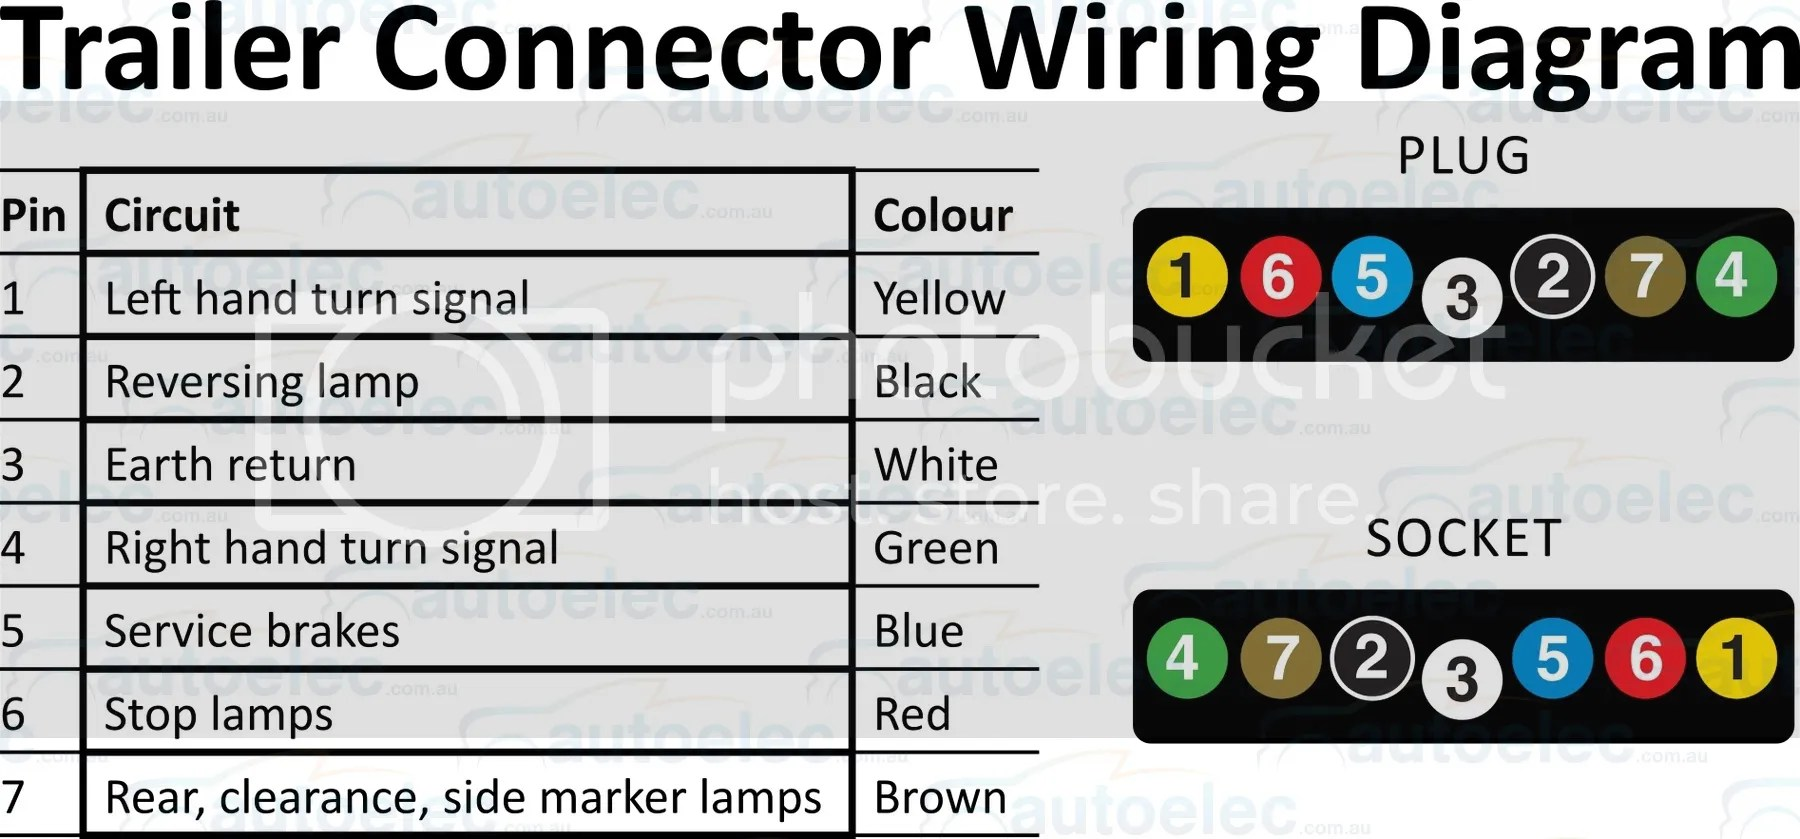 Trailer Connector Wiring Diagrams?resize=665%2C310 7 pin flat trailer wiring diagram wiring diagram 7 Pin Trailer Wiring Diagram at crackthecode.co